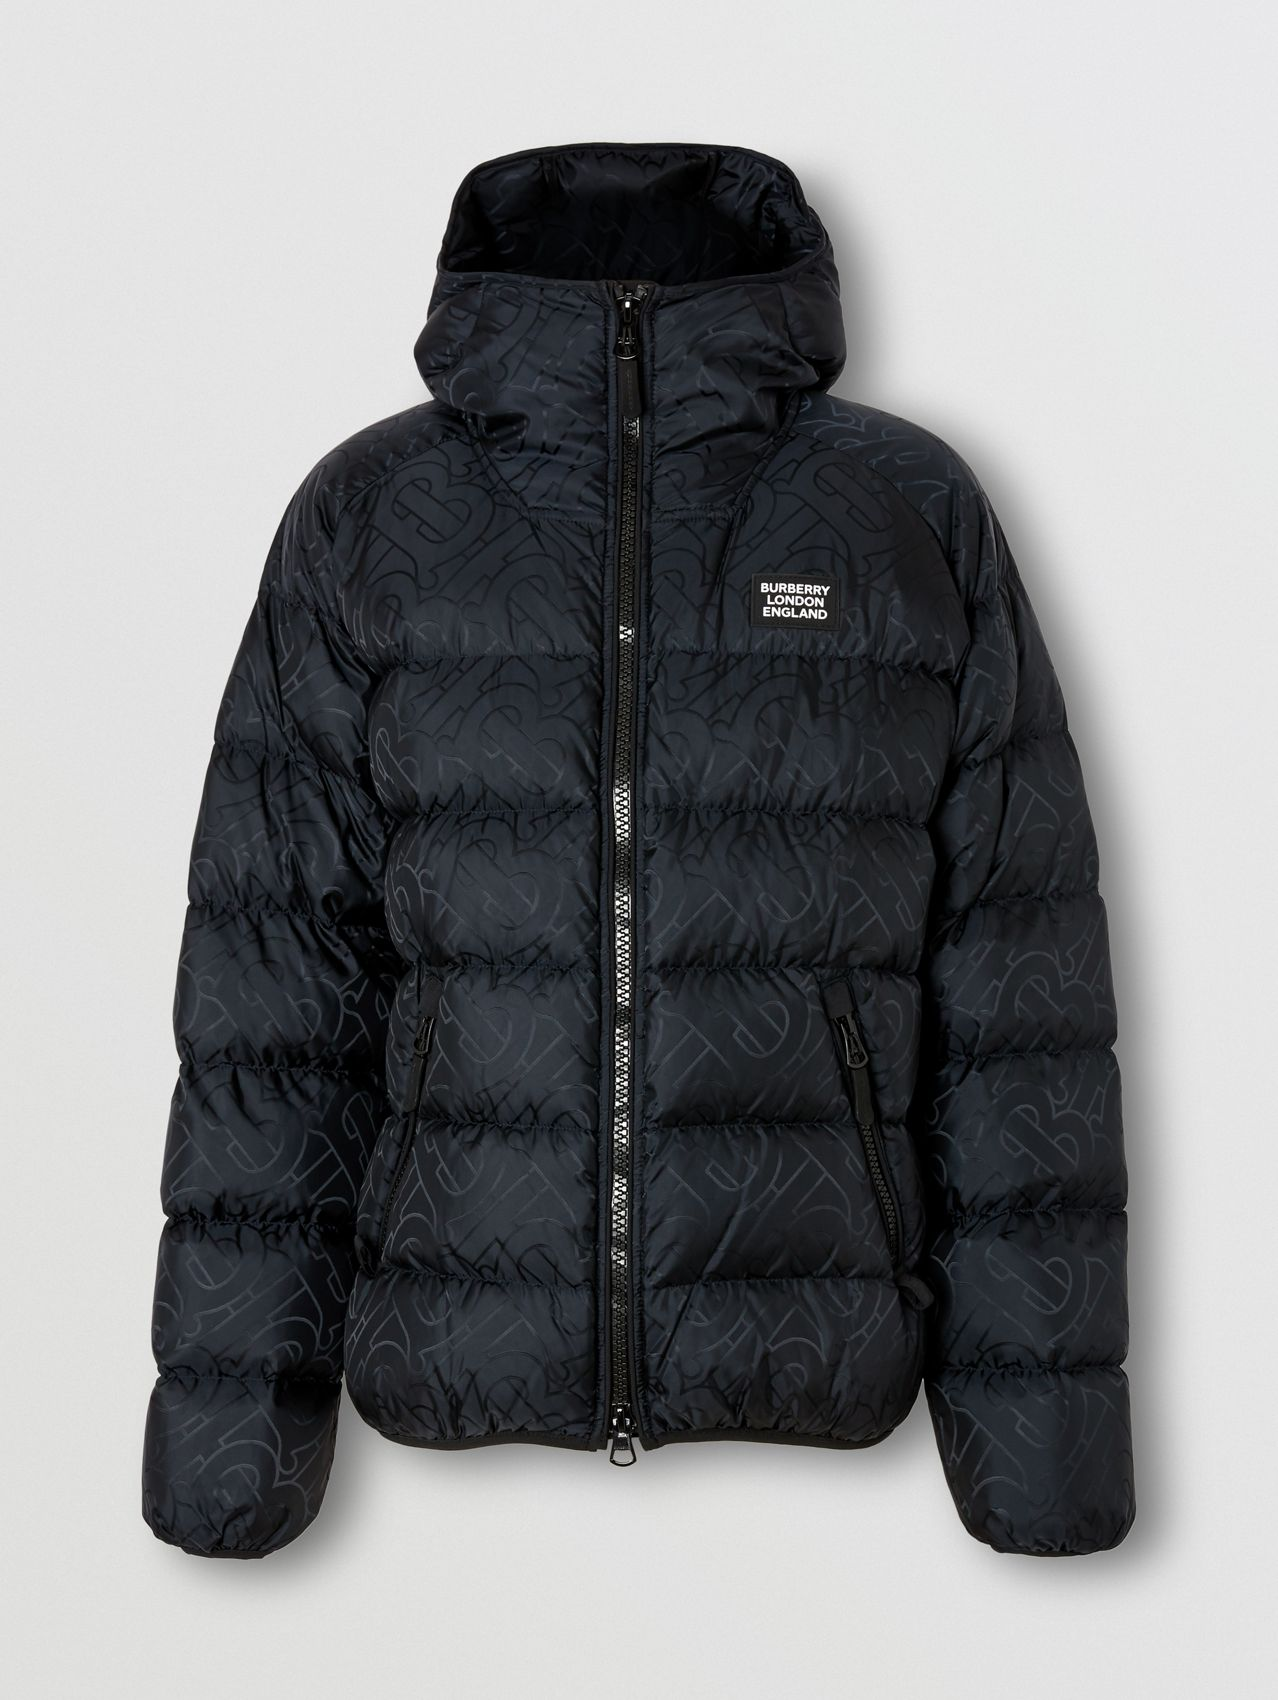 Monogram Jacquard Hooded Puffer Jacket in Black